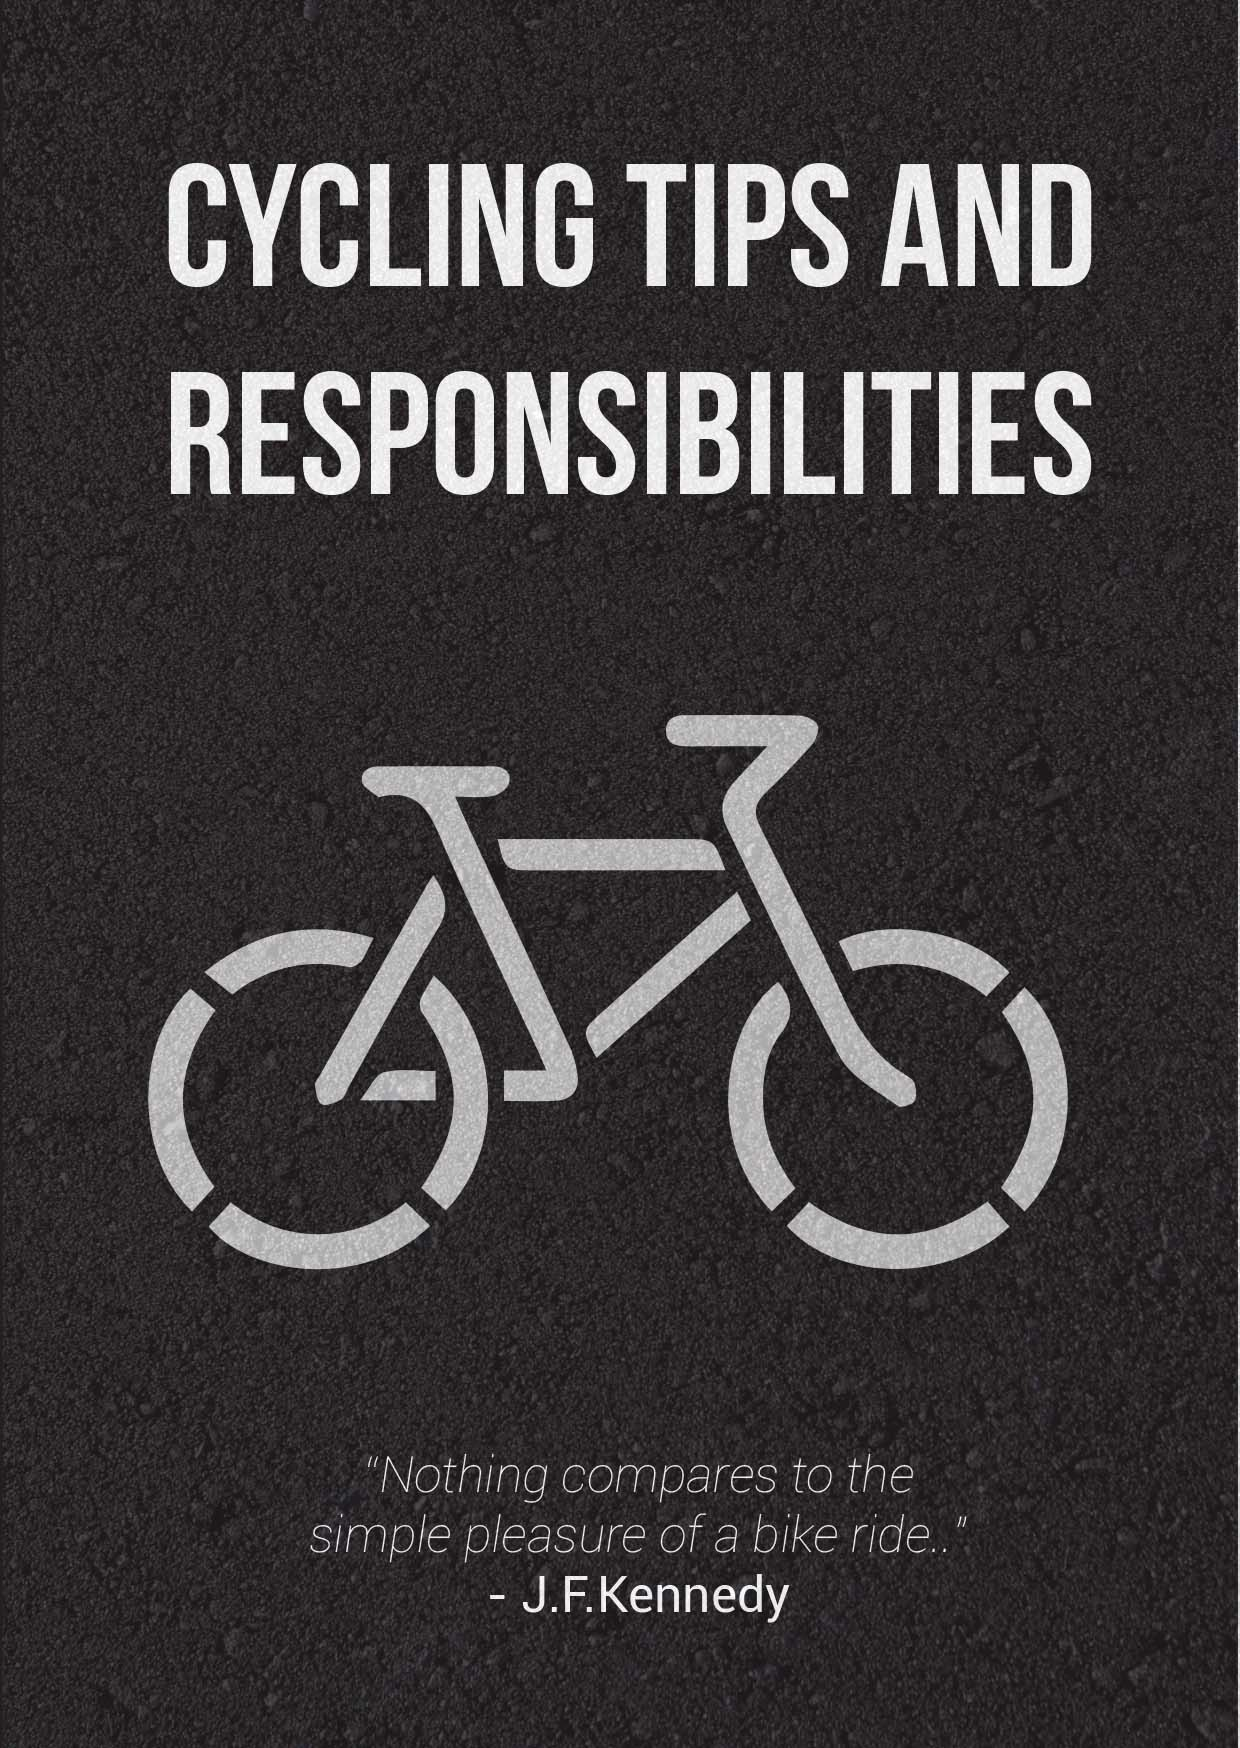 Cycling Tips and Responsibilities A6 Pamplet-1